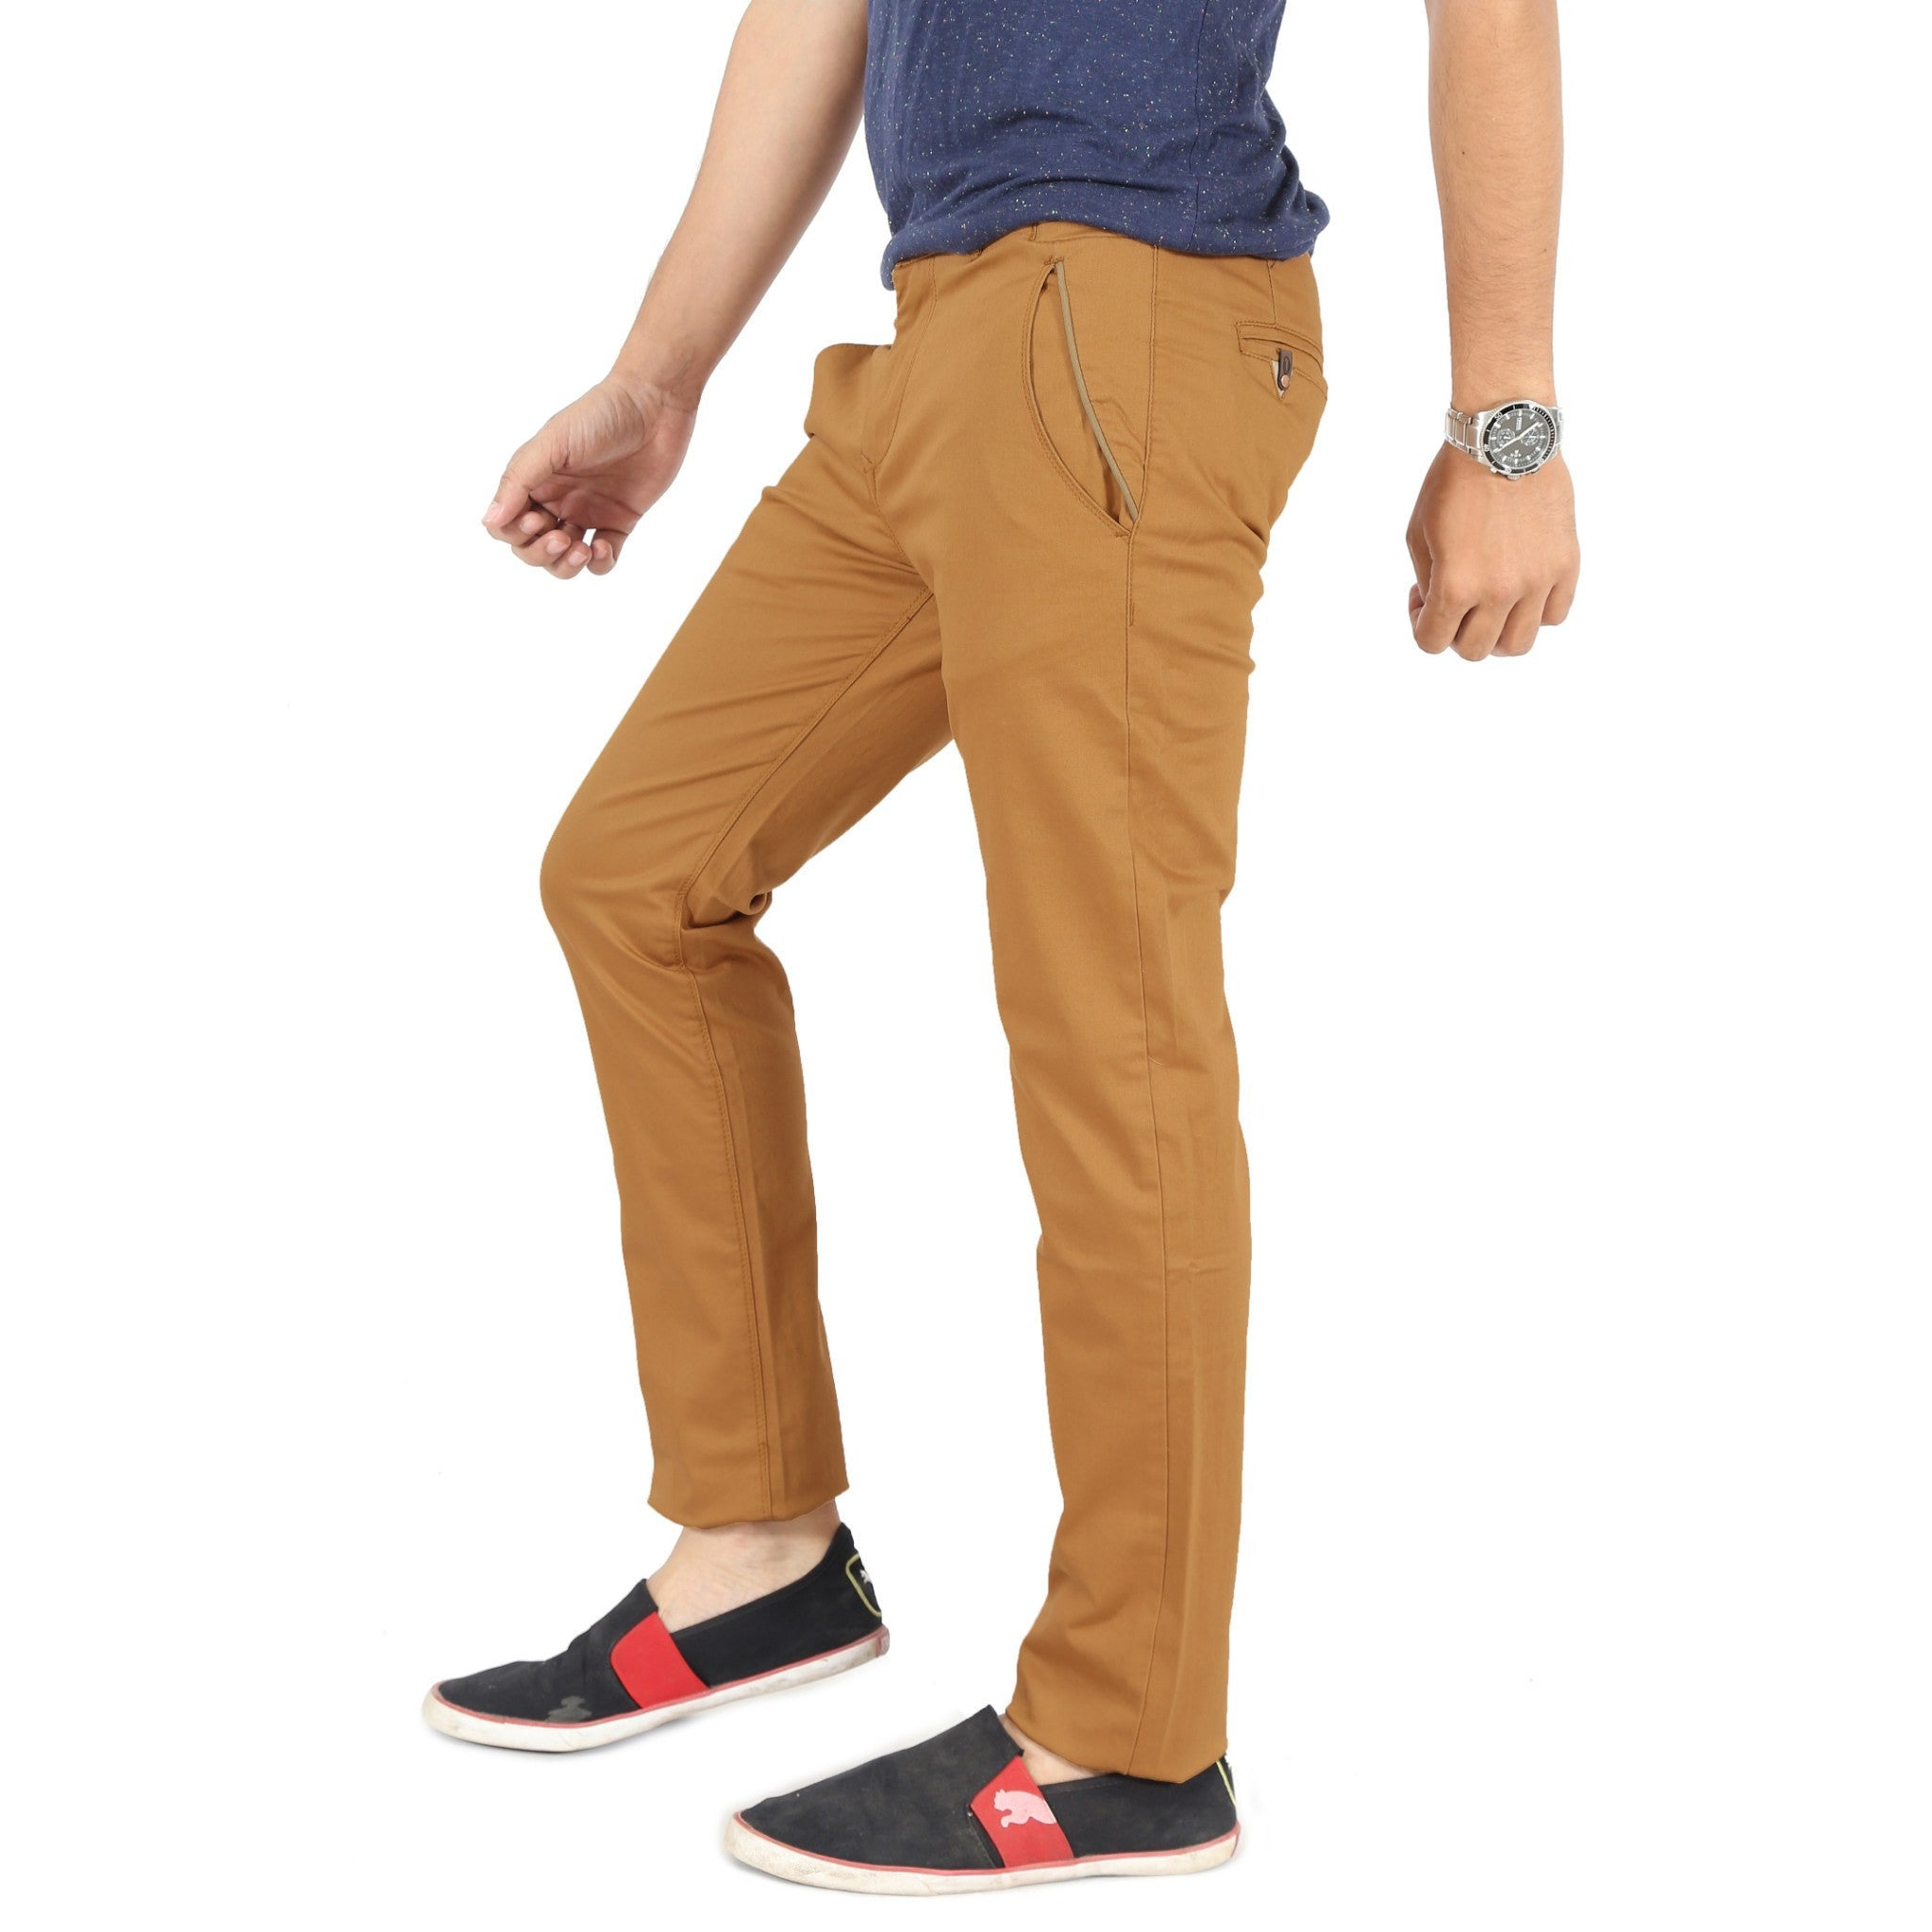 Uber Golden Brown Cotton Twill Elastene Trouser left side view